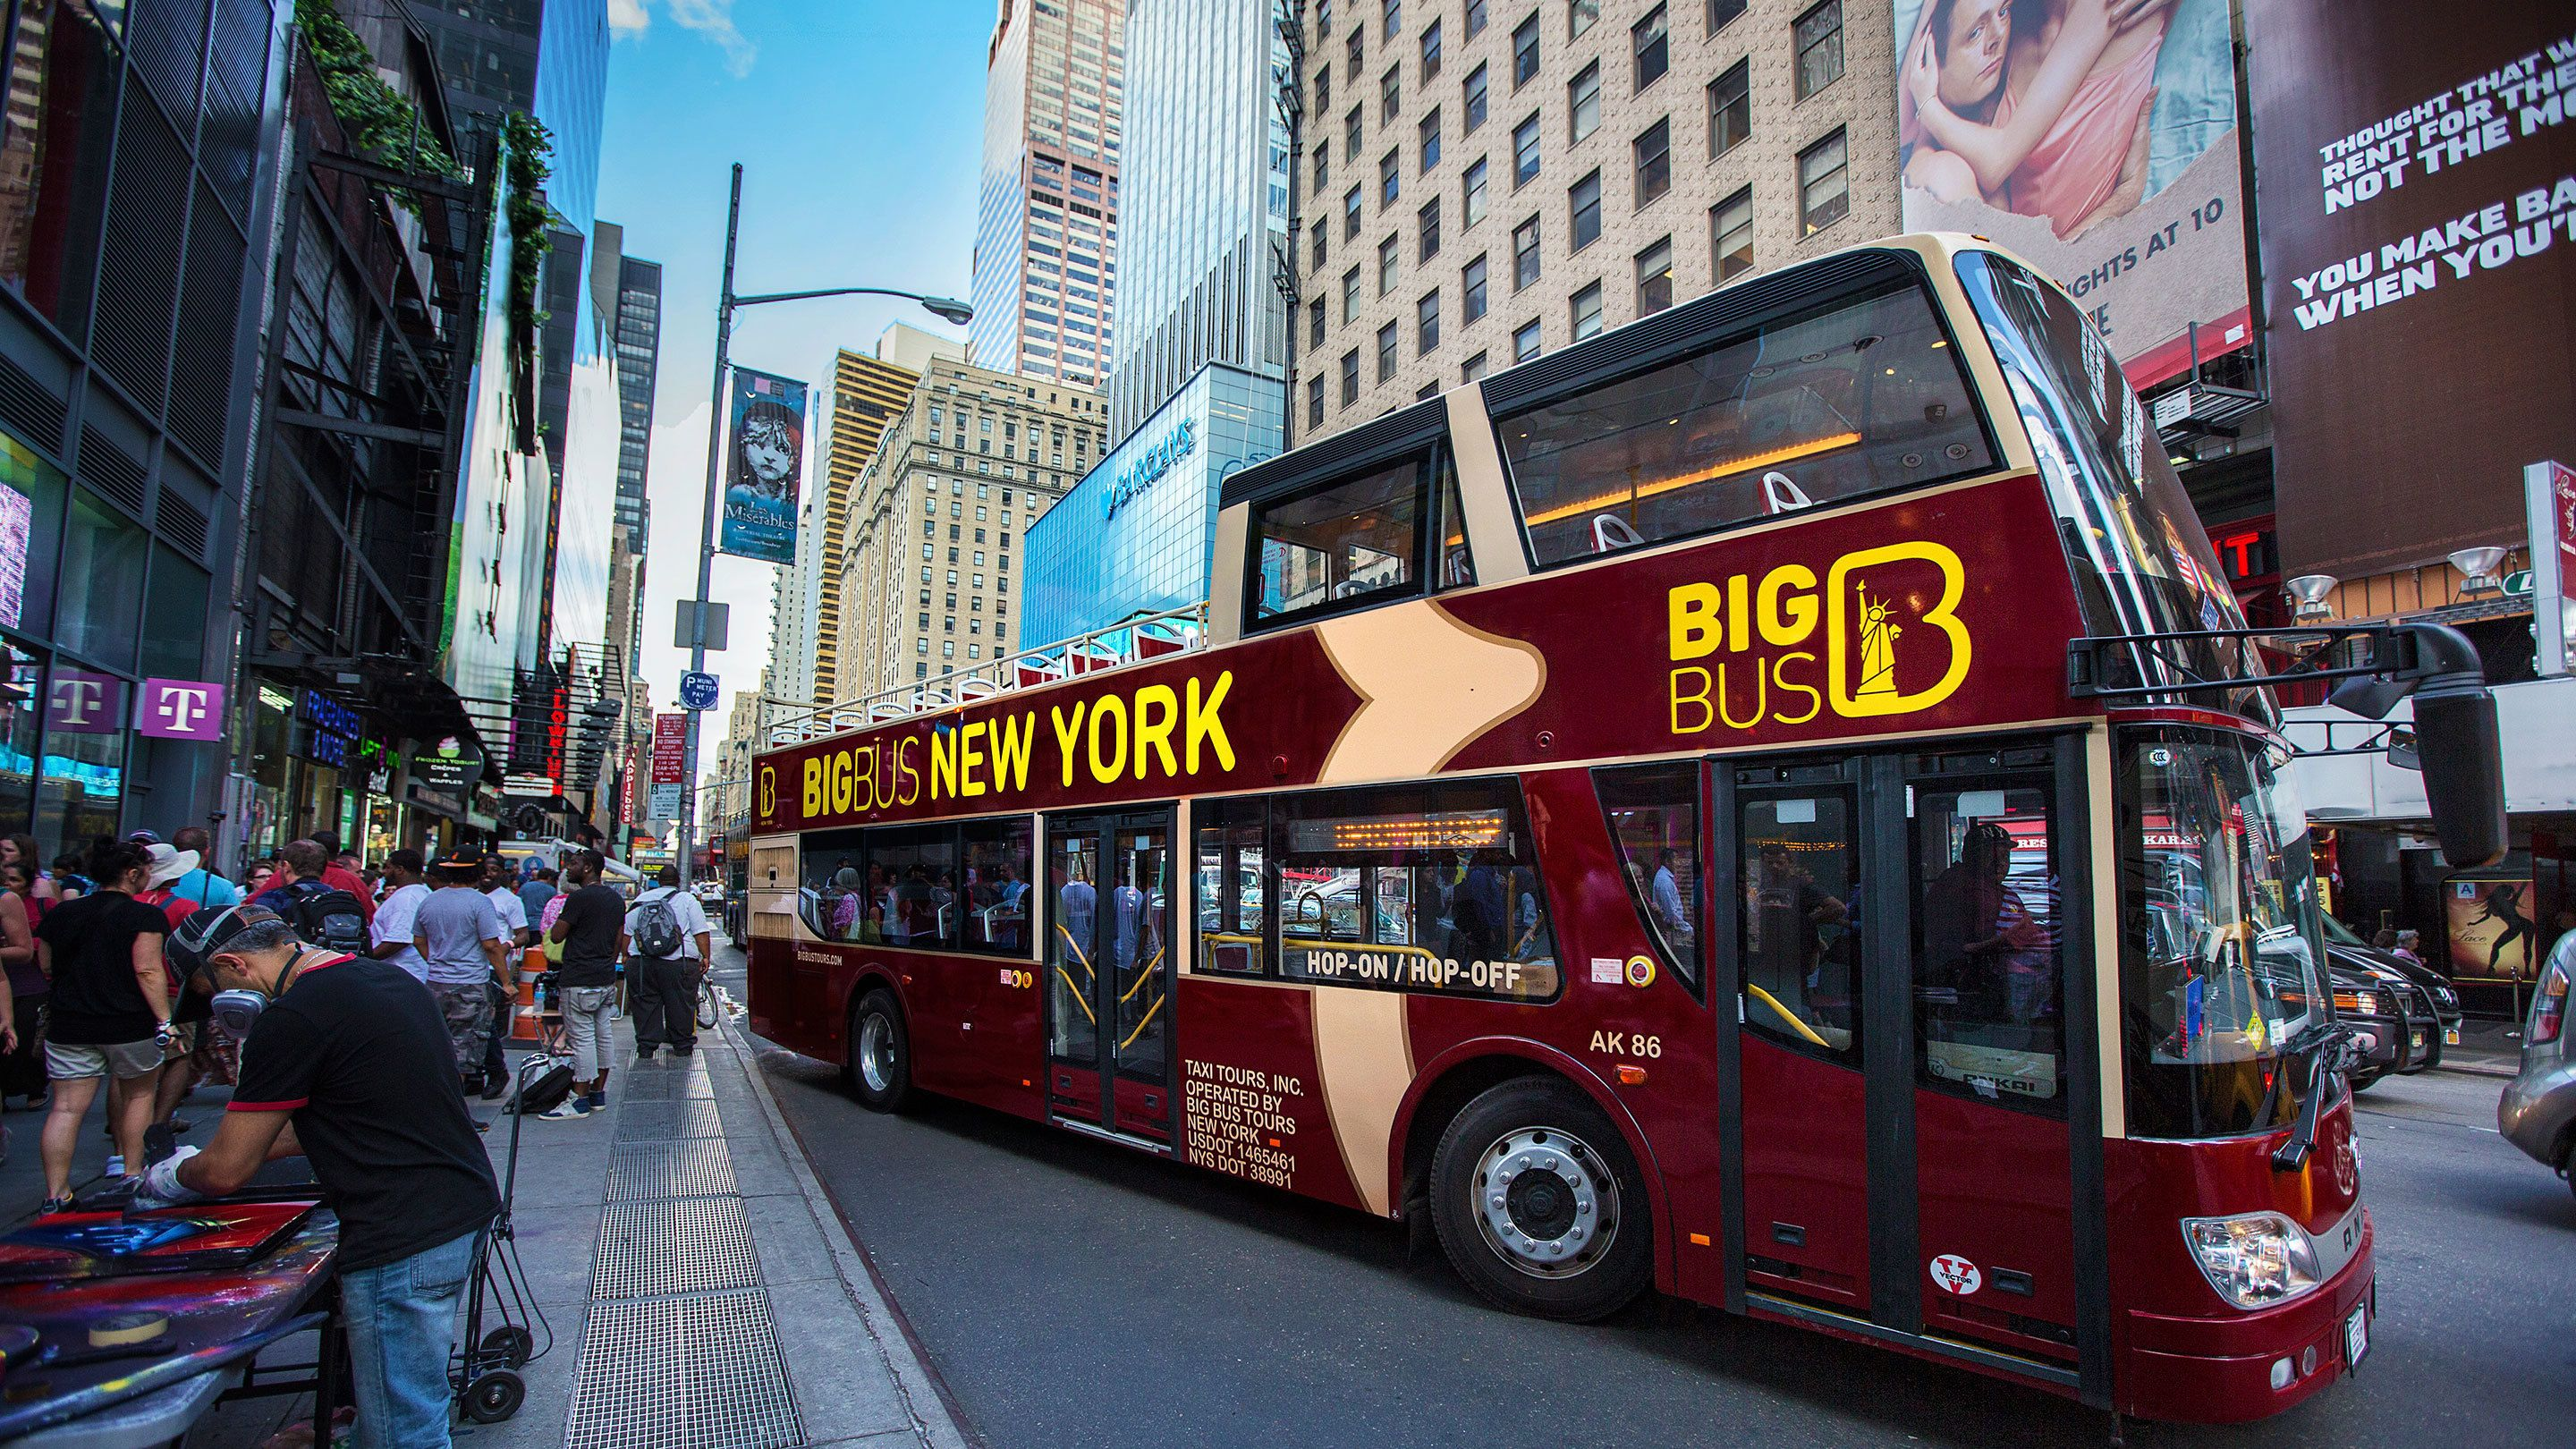 Tour bus in New York City